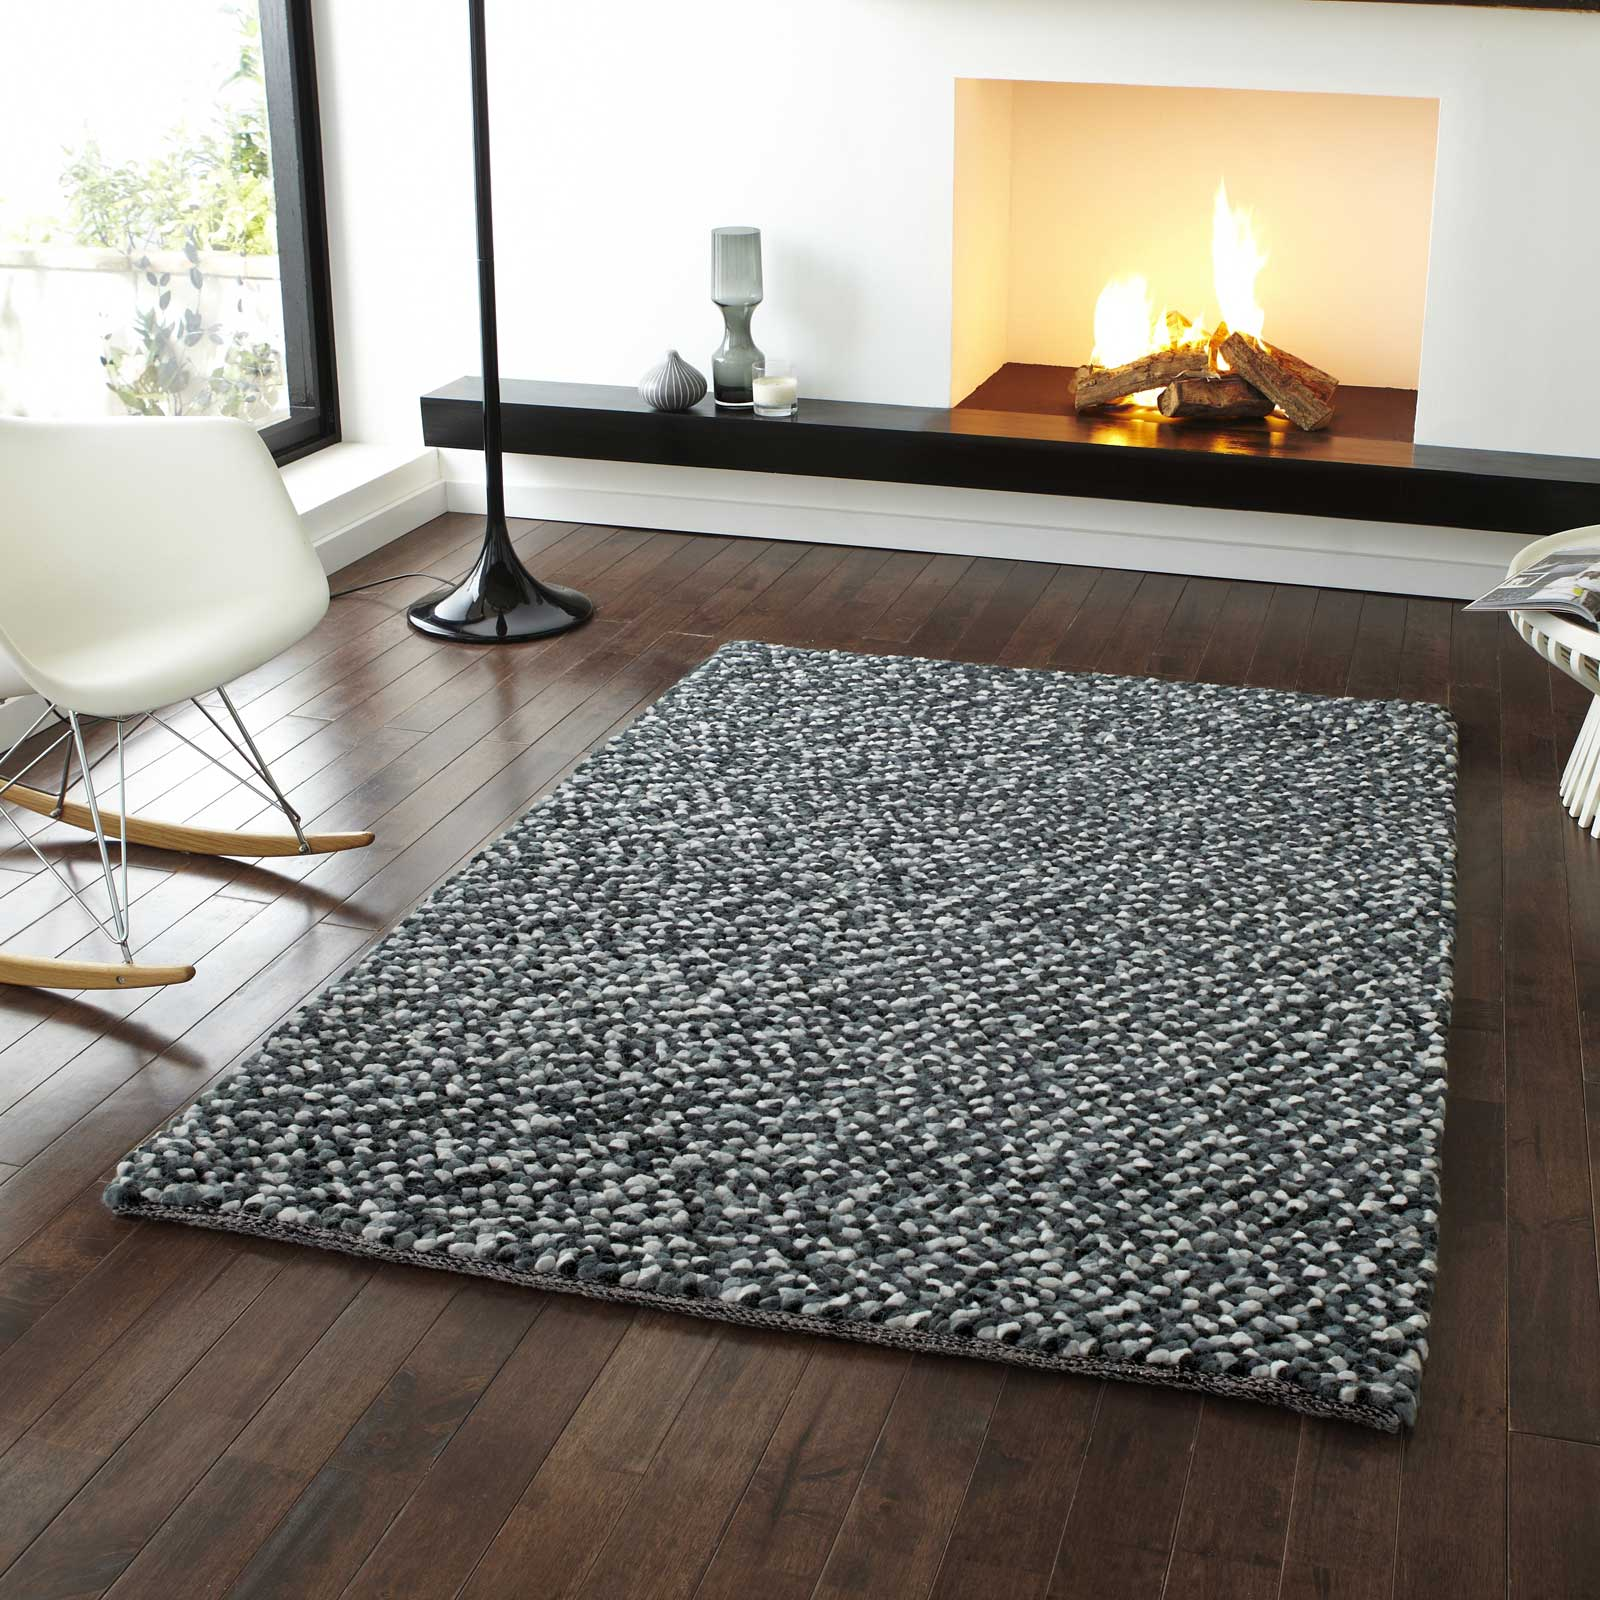 Pebbles Wool Shaggy Rugs In Grey Part 51